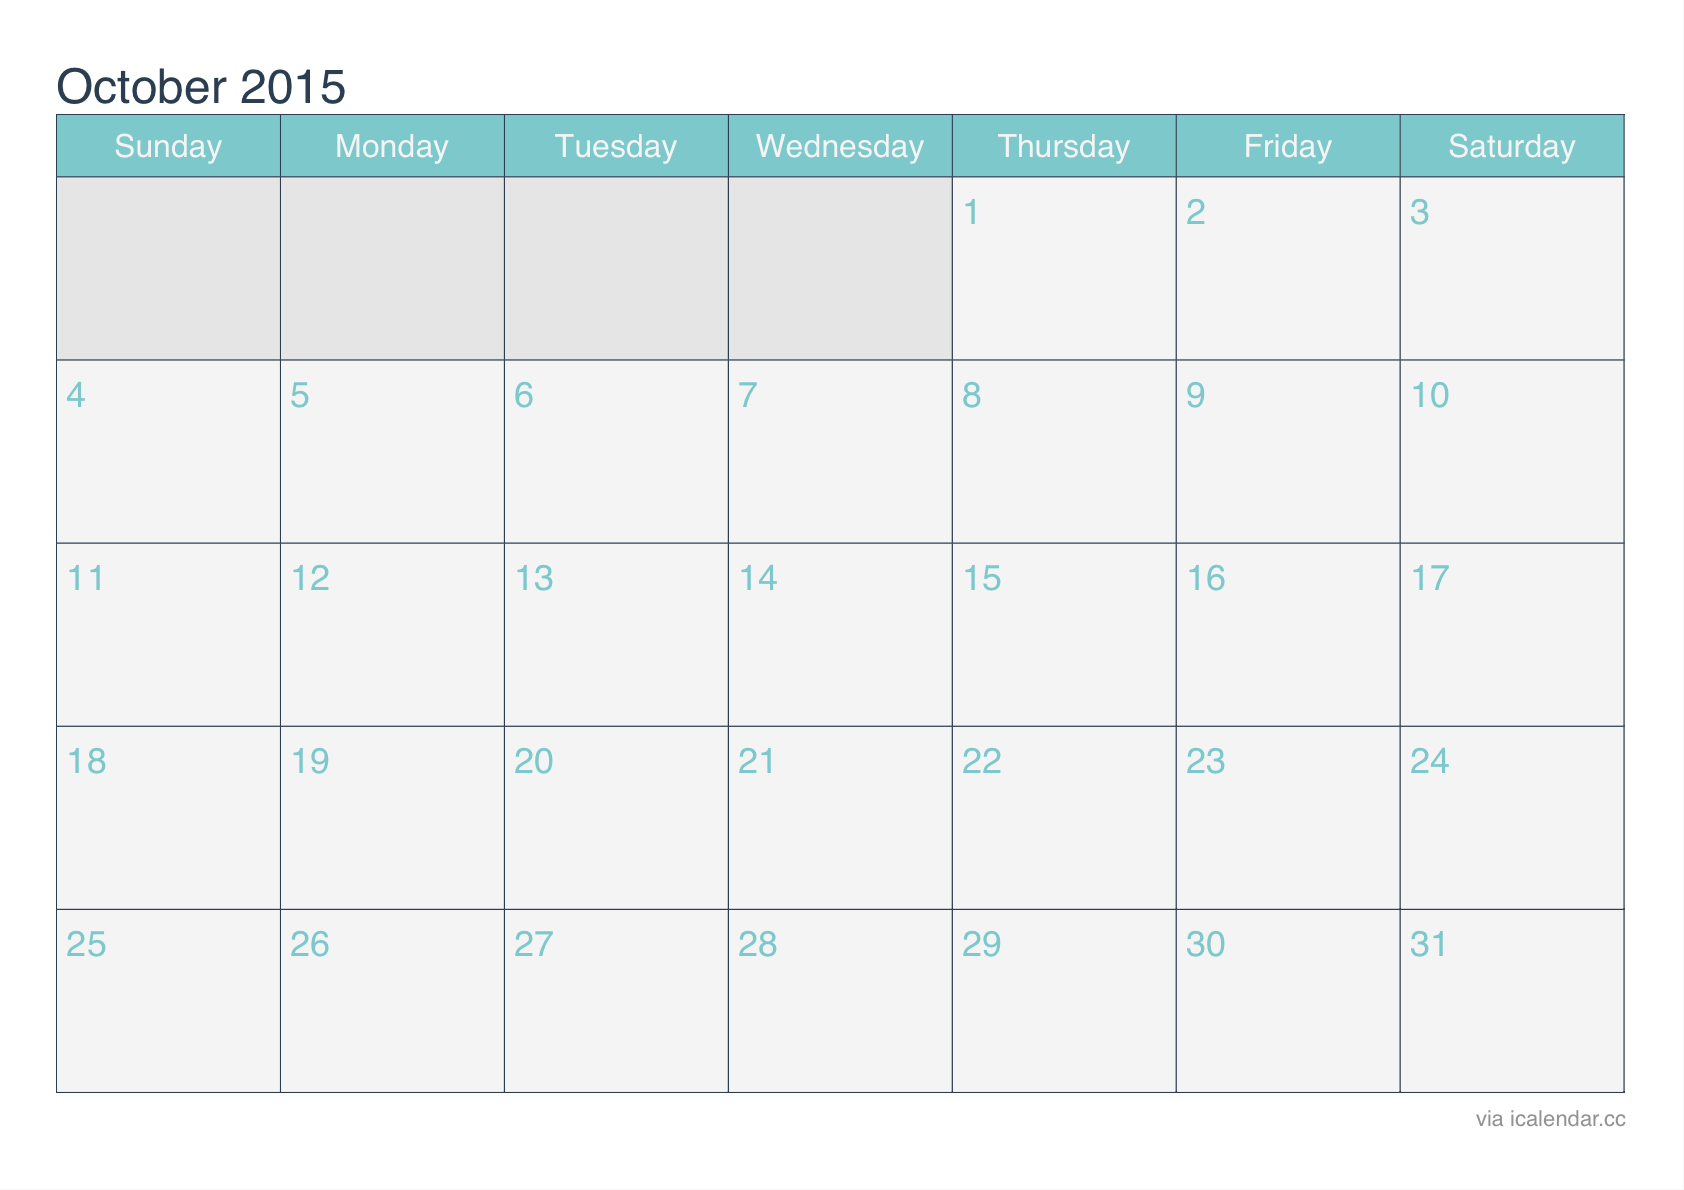 2015 october calendar turquoise 2015 october calendar turquoise